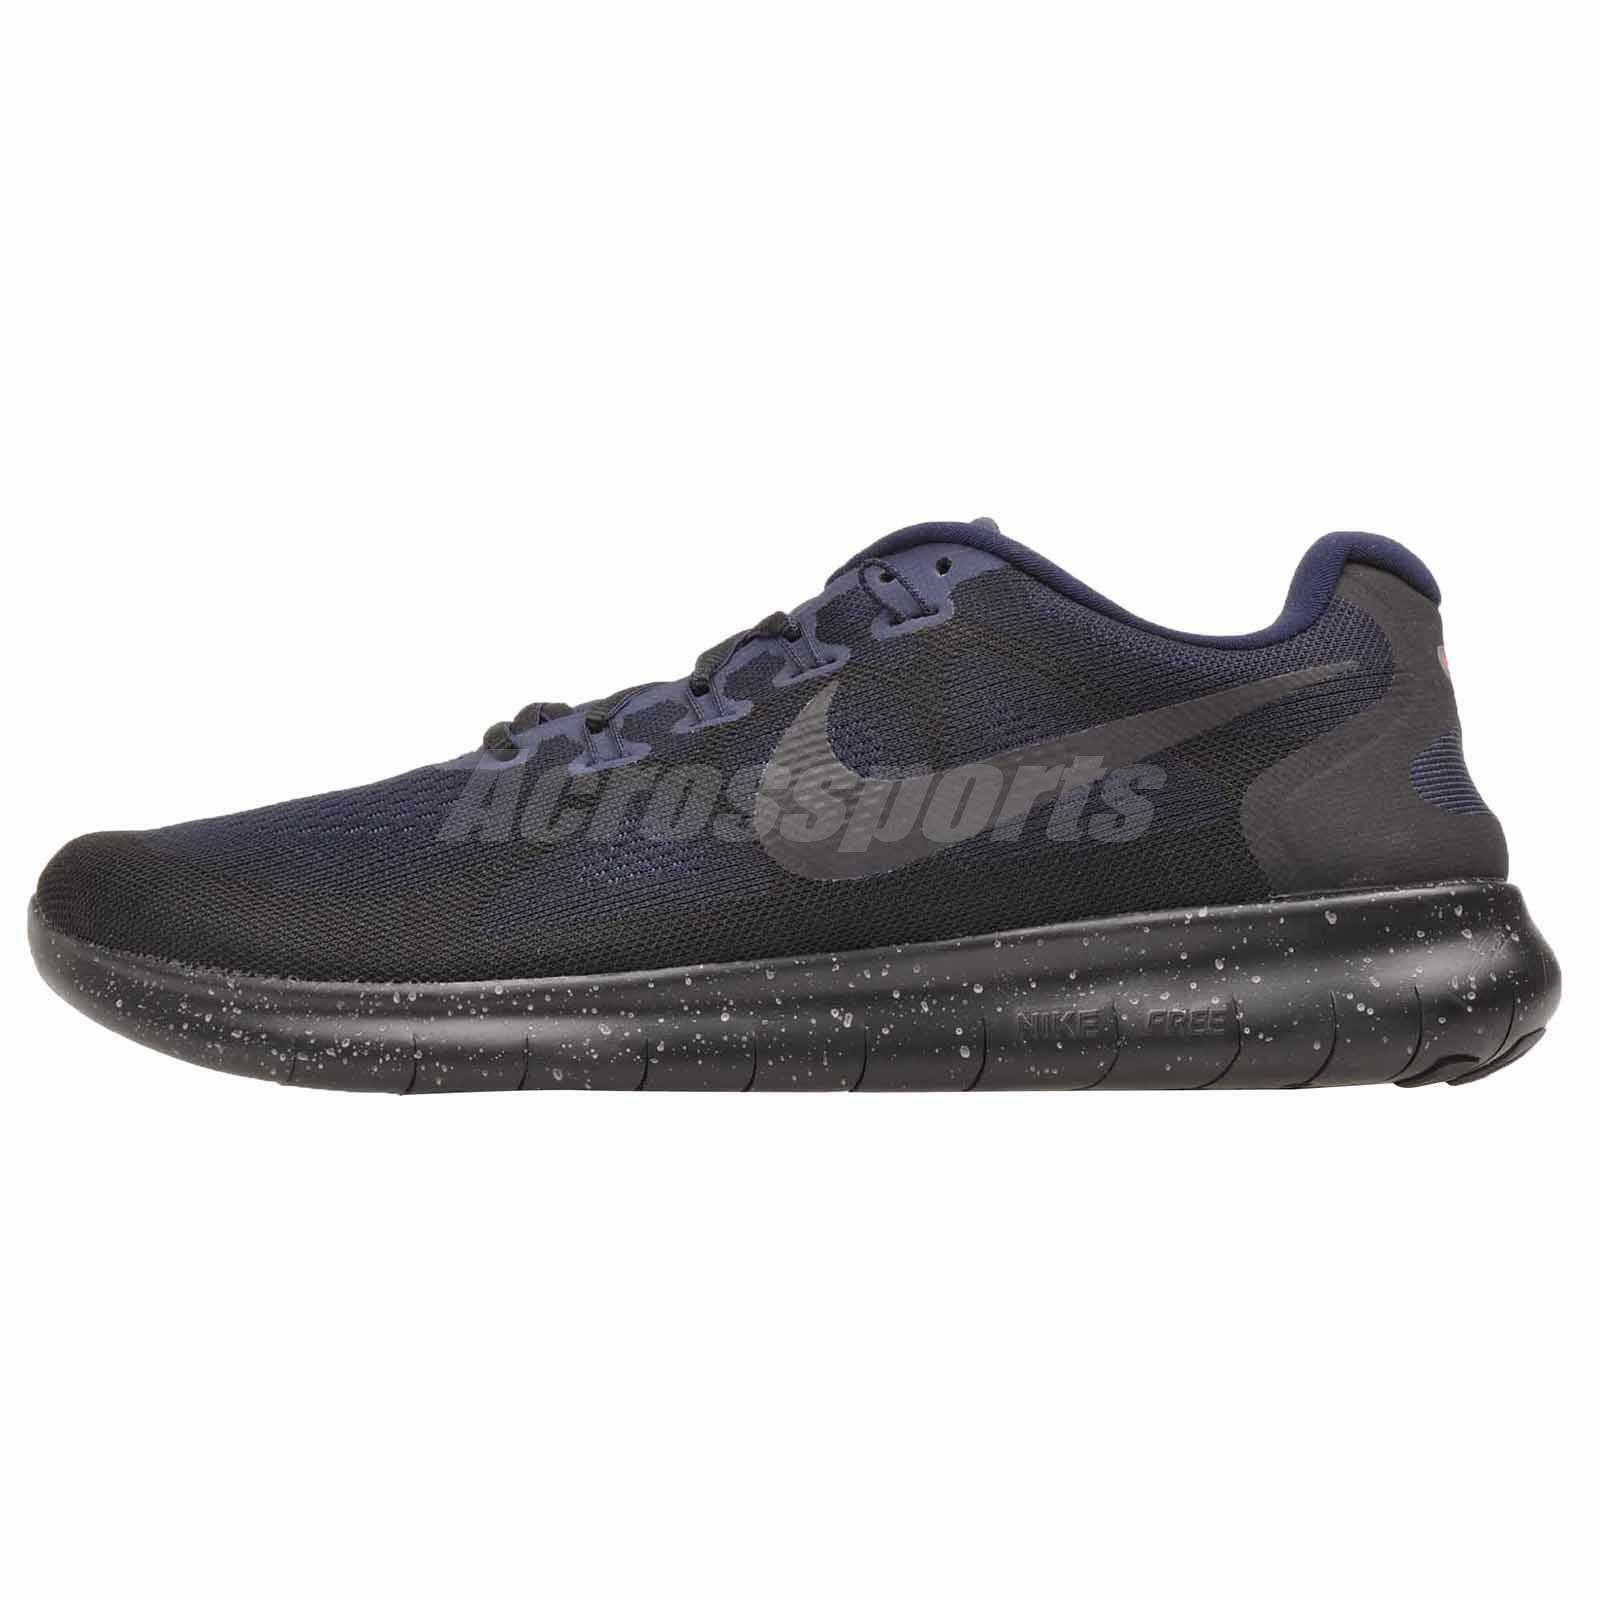 Nike Free RN 2017 Shield Running Mens shoes NWOB Black AA3760-001